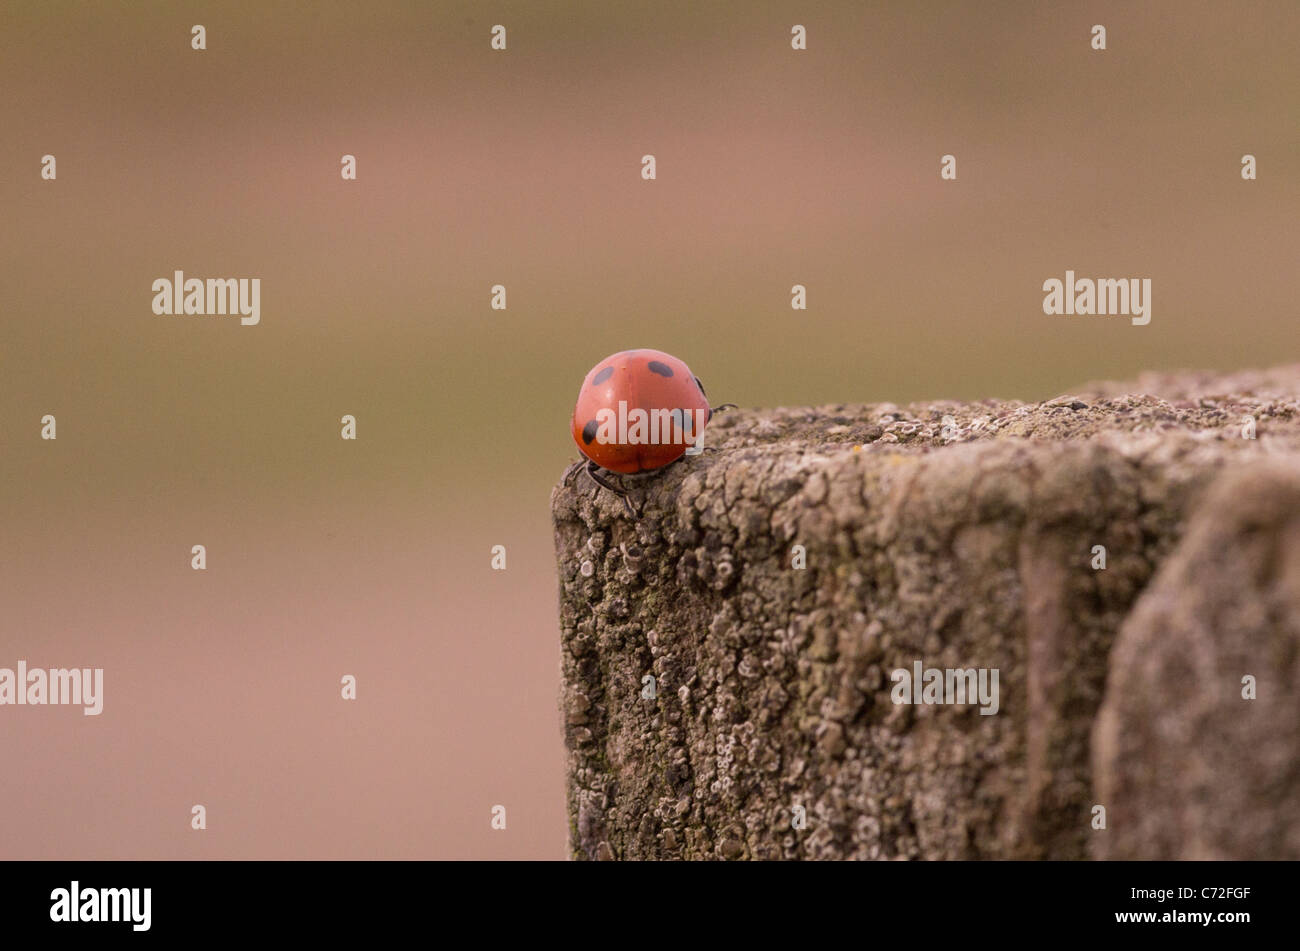 A ladybird or ladybug on a wooden fence post Stock Photo